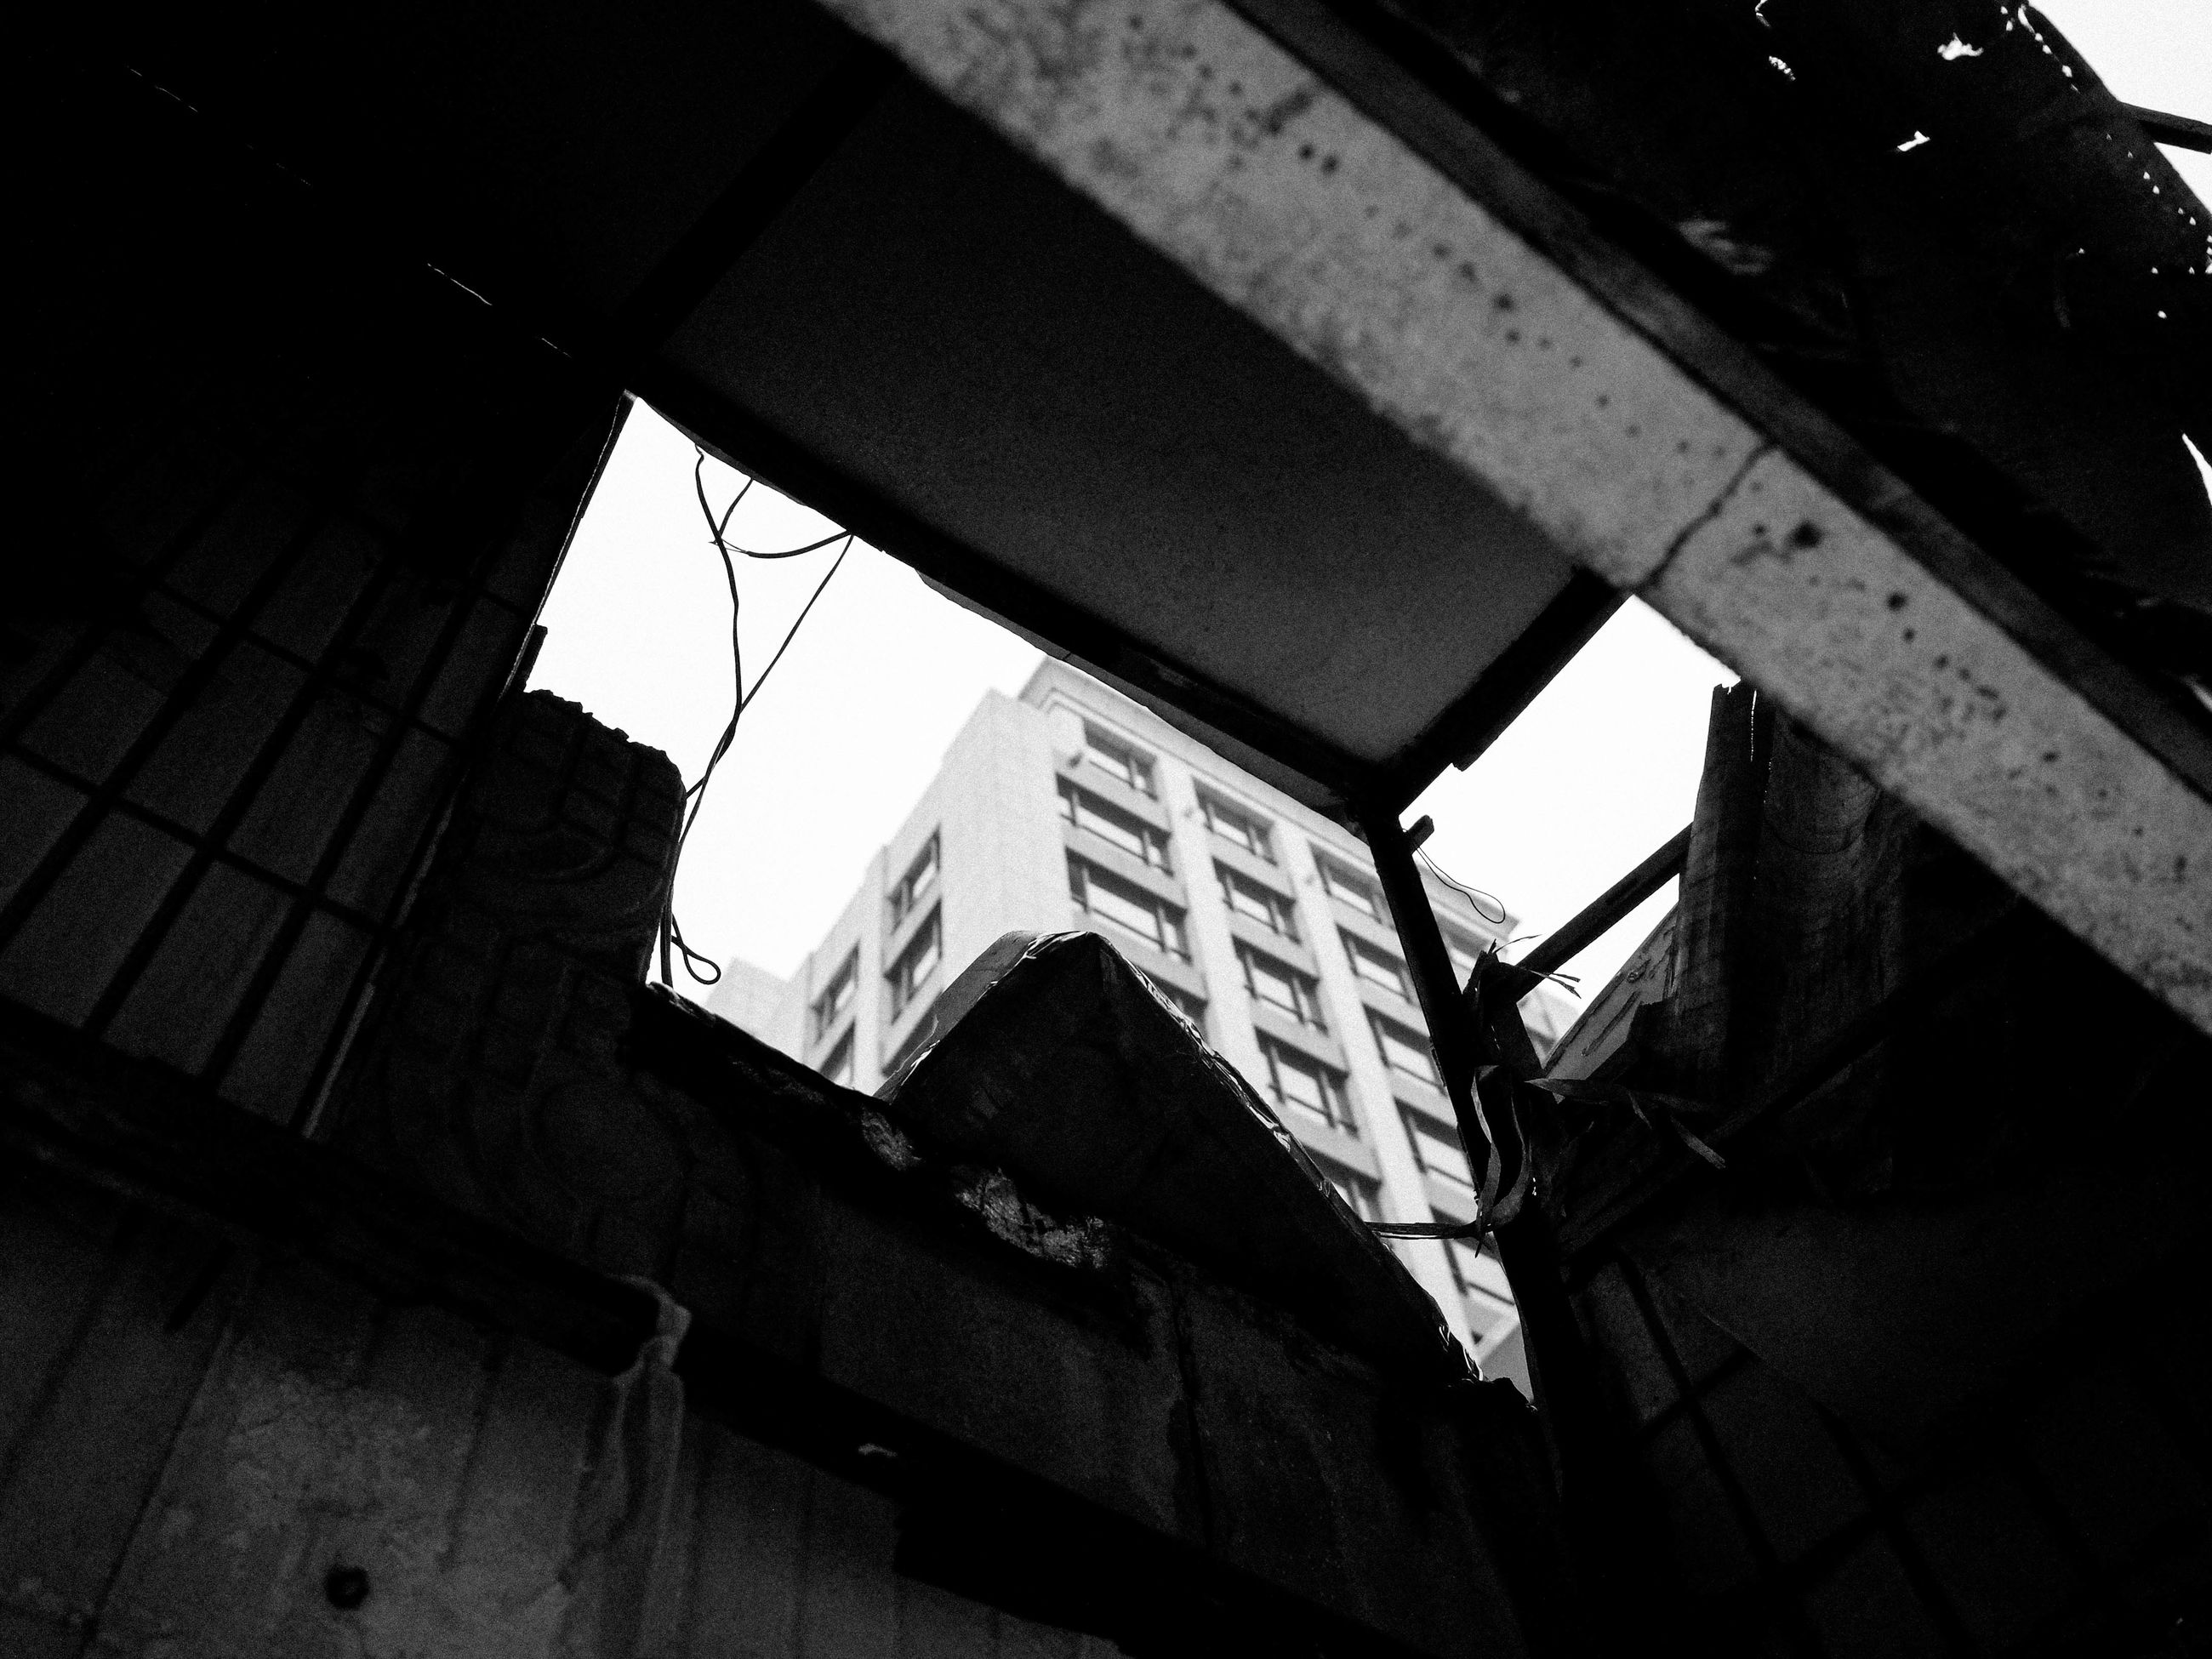 architecture, built structure, low angle view, building exterior, building, sky, window, residential building, clear sky, city, old, no people, day, outdoors, abandoned, residential structure, damaged, sunlight, tilt, shadow